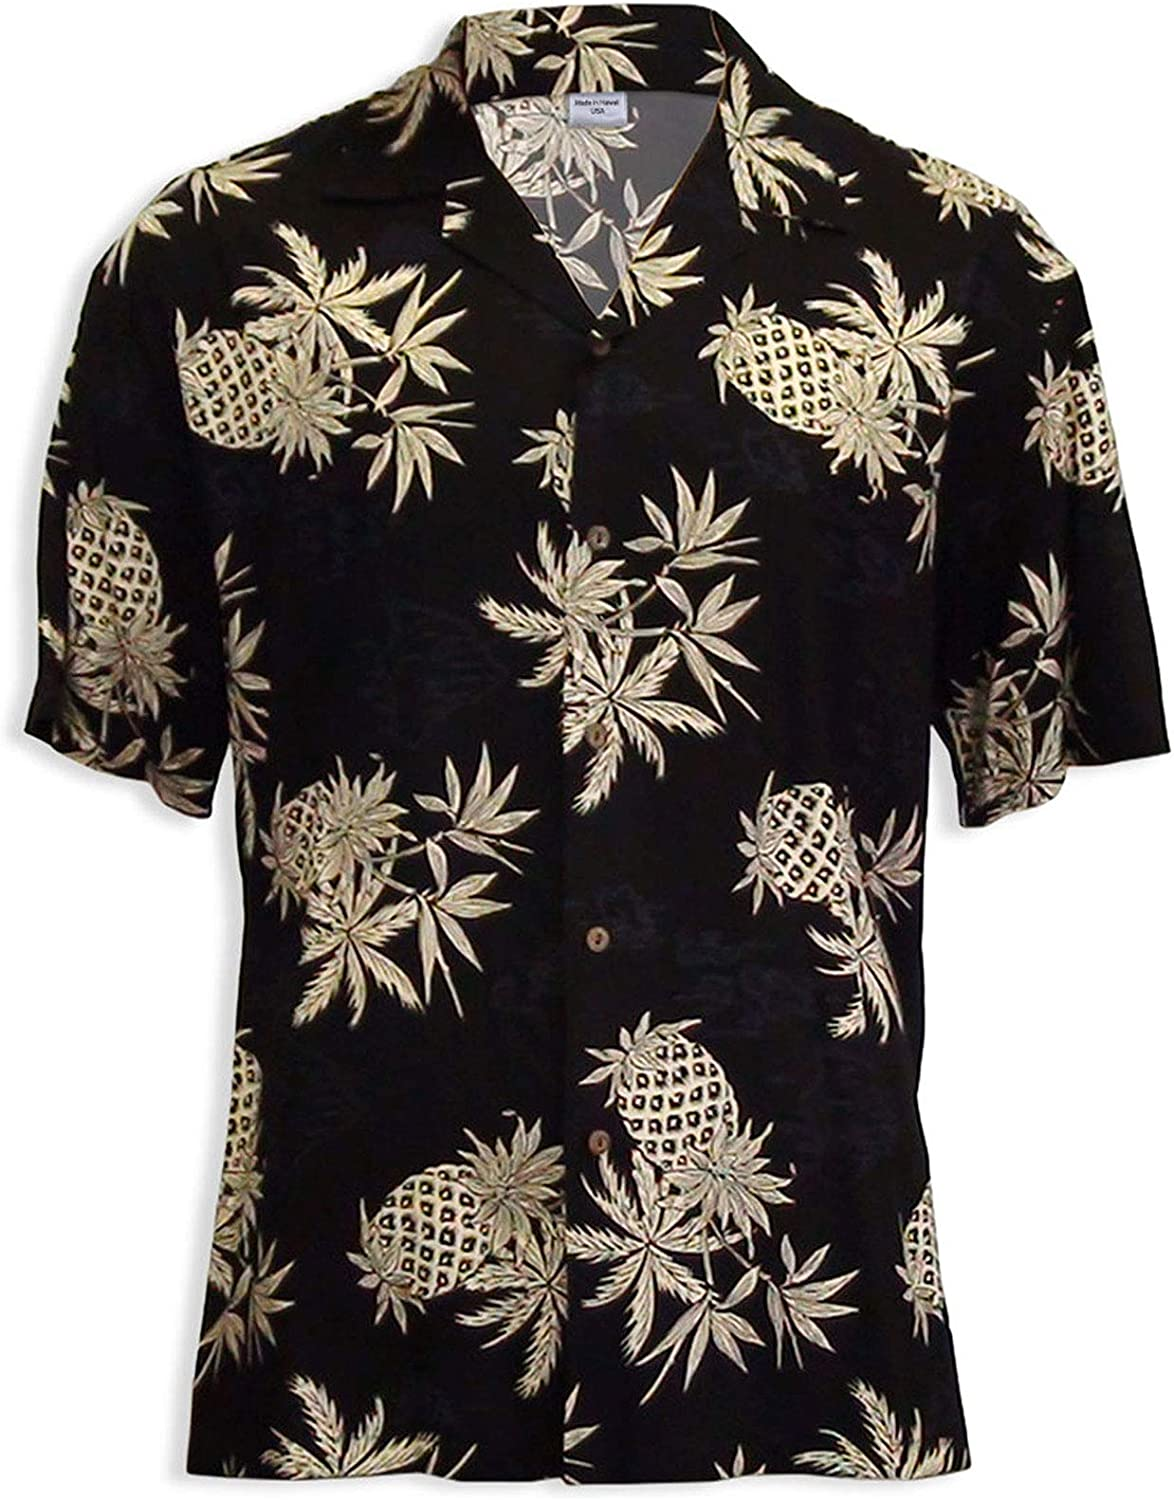 Hawaiian Shirts for Men in Rayon - Made in Hawaii - Lots of Desings and Colors